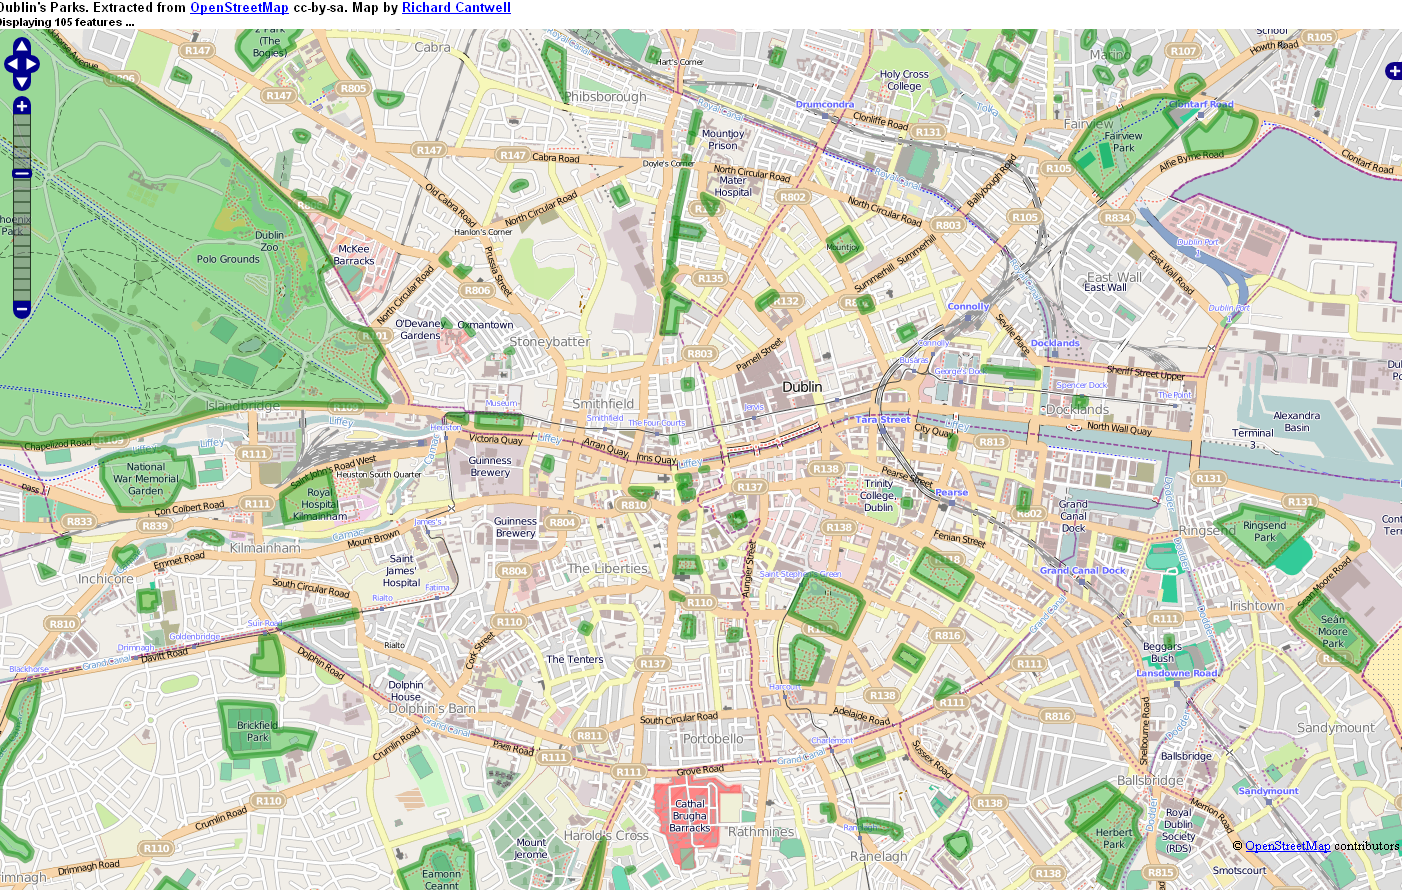 Map Showing The Lack Of Green Spaces/Public Parks In Dublin 8